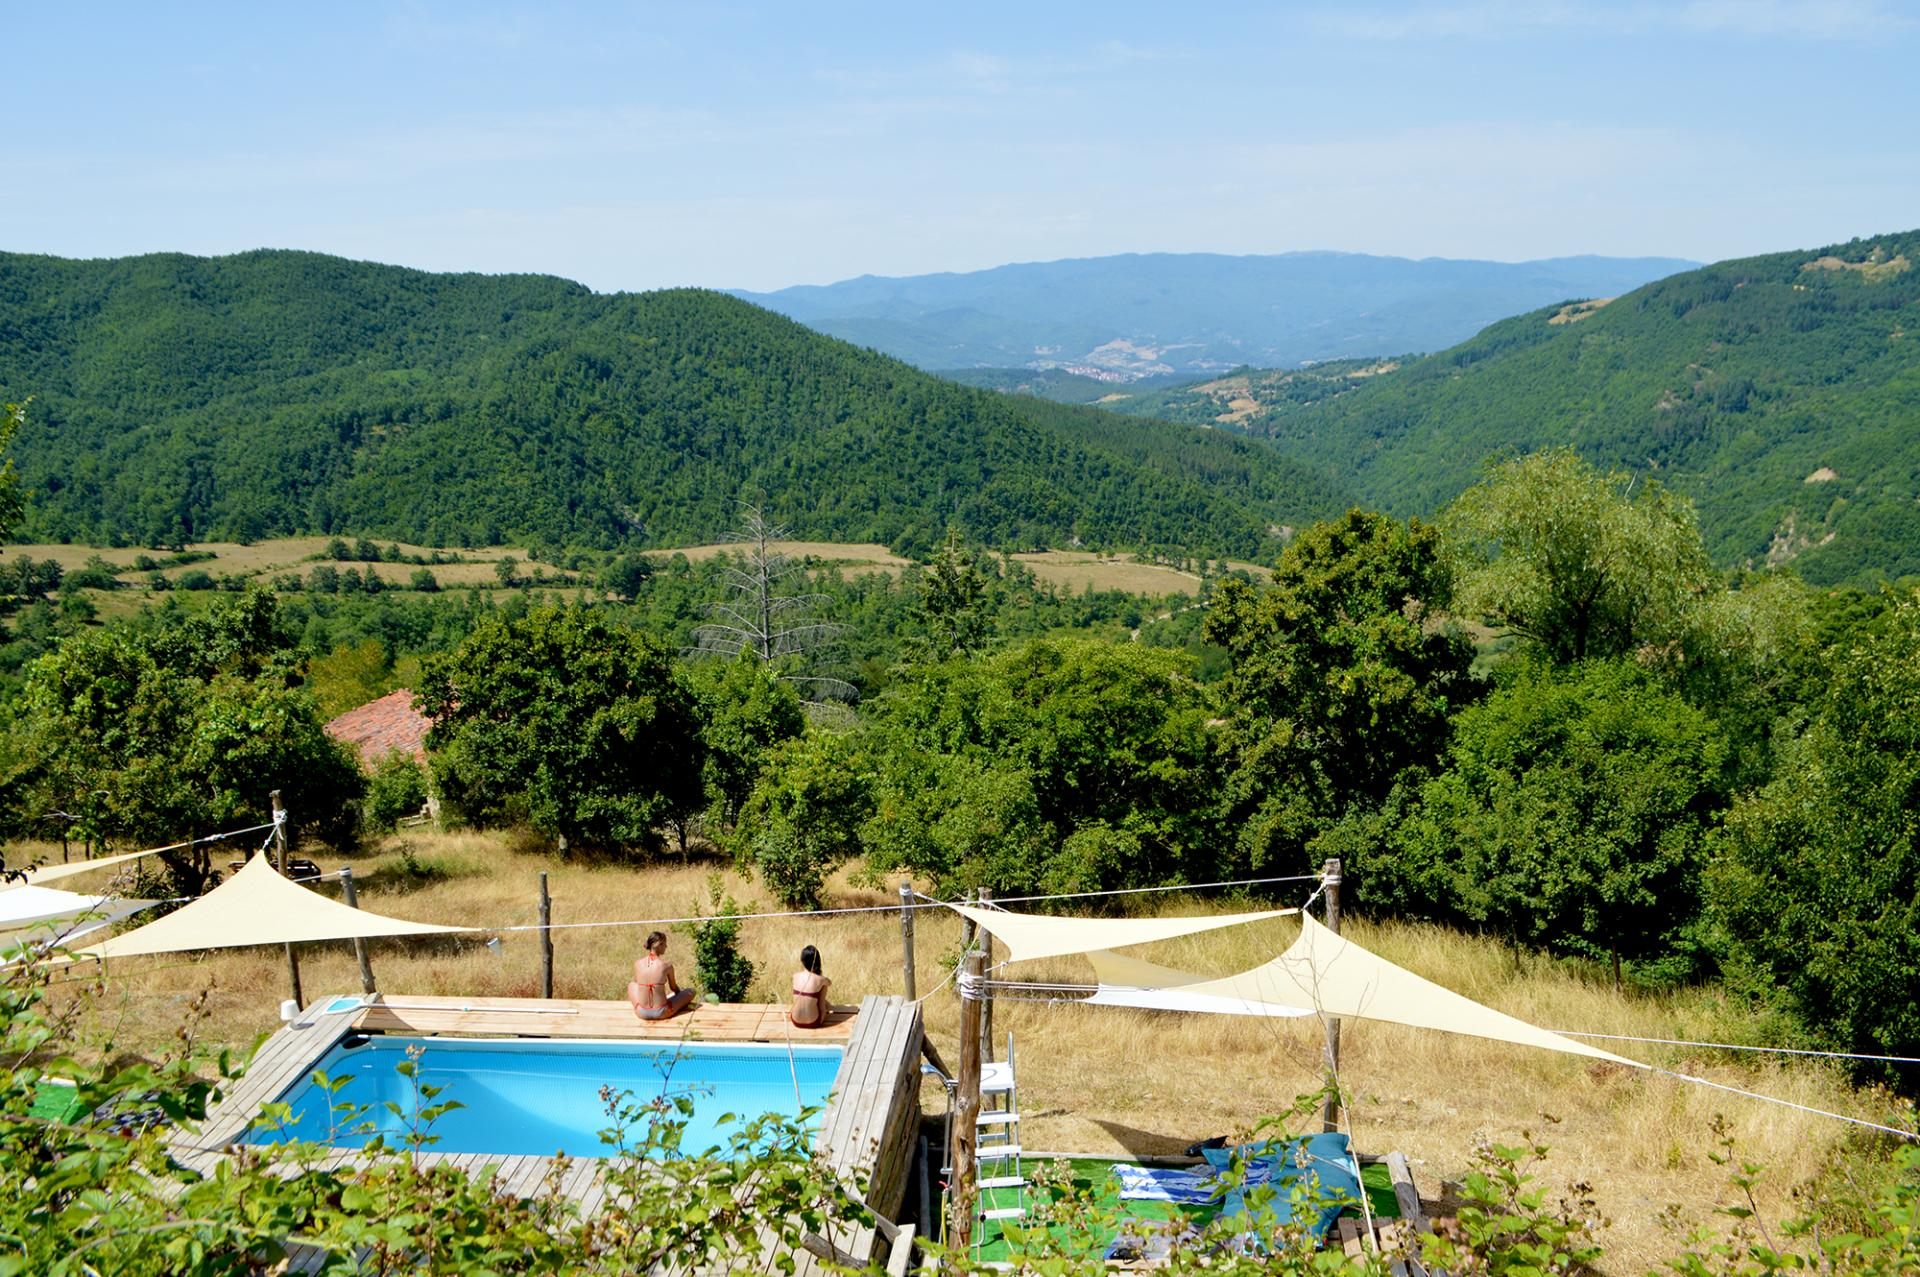 Places to stay: Novanta90 off-grid hotel, Tuscany